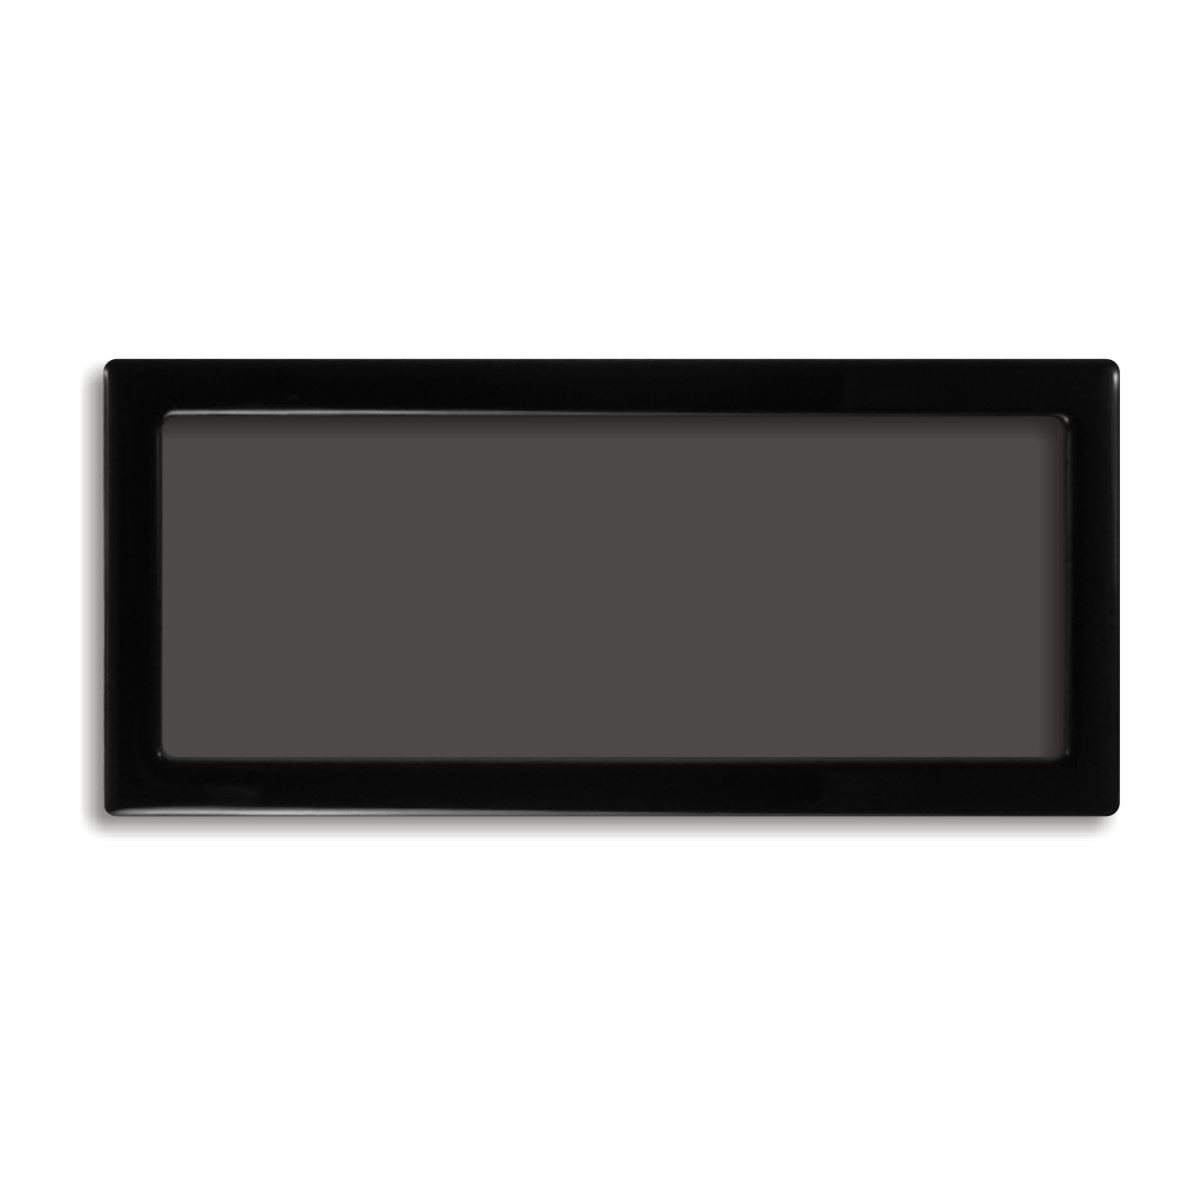 Picture of Corsair Air 740 Rear Dust Filter (Large)